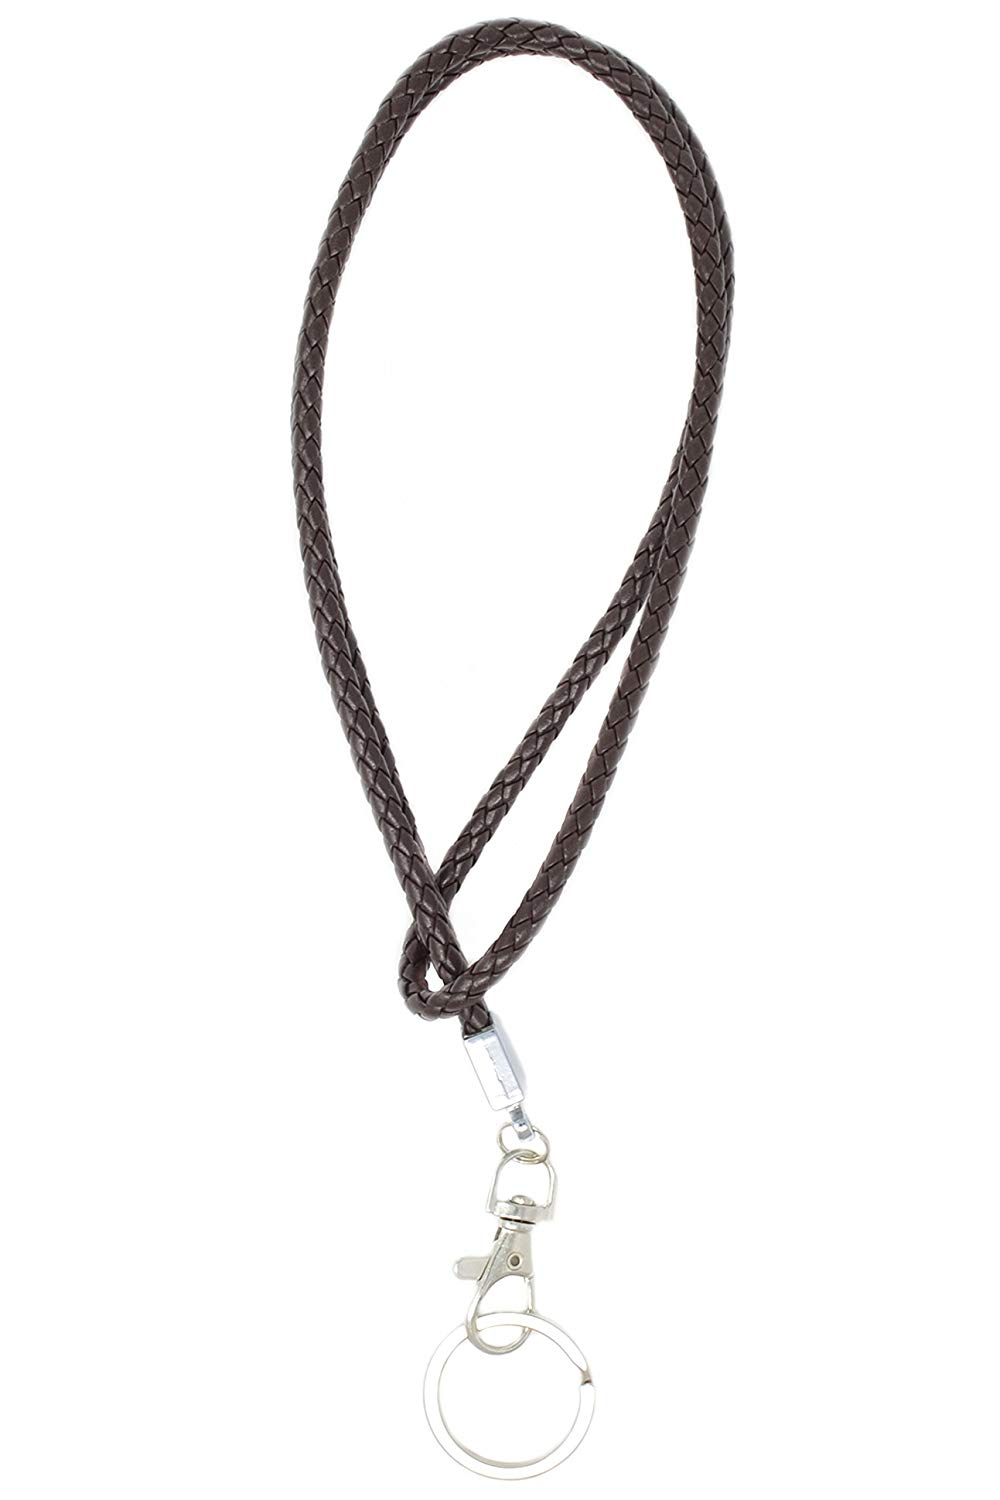 58b312ae65bfe1 Get Quotations · Braided PU Leather Necklace LANYARD with keyring and  lobster hook (Brown)